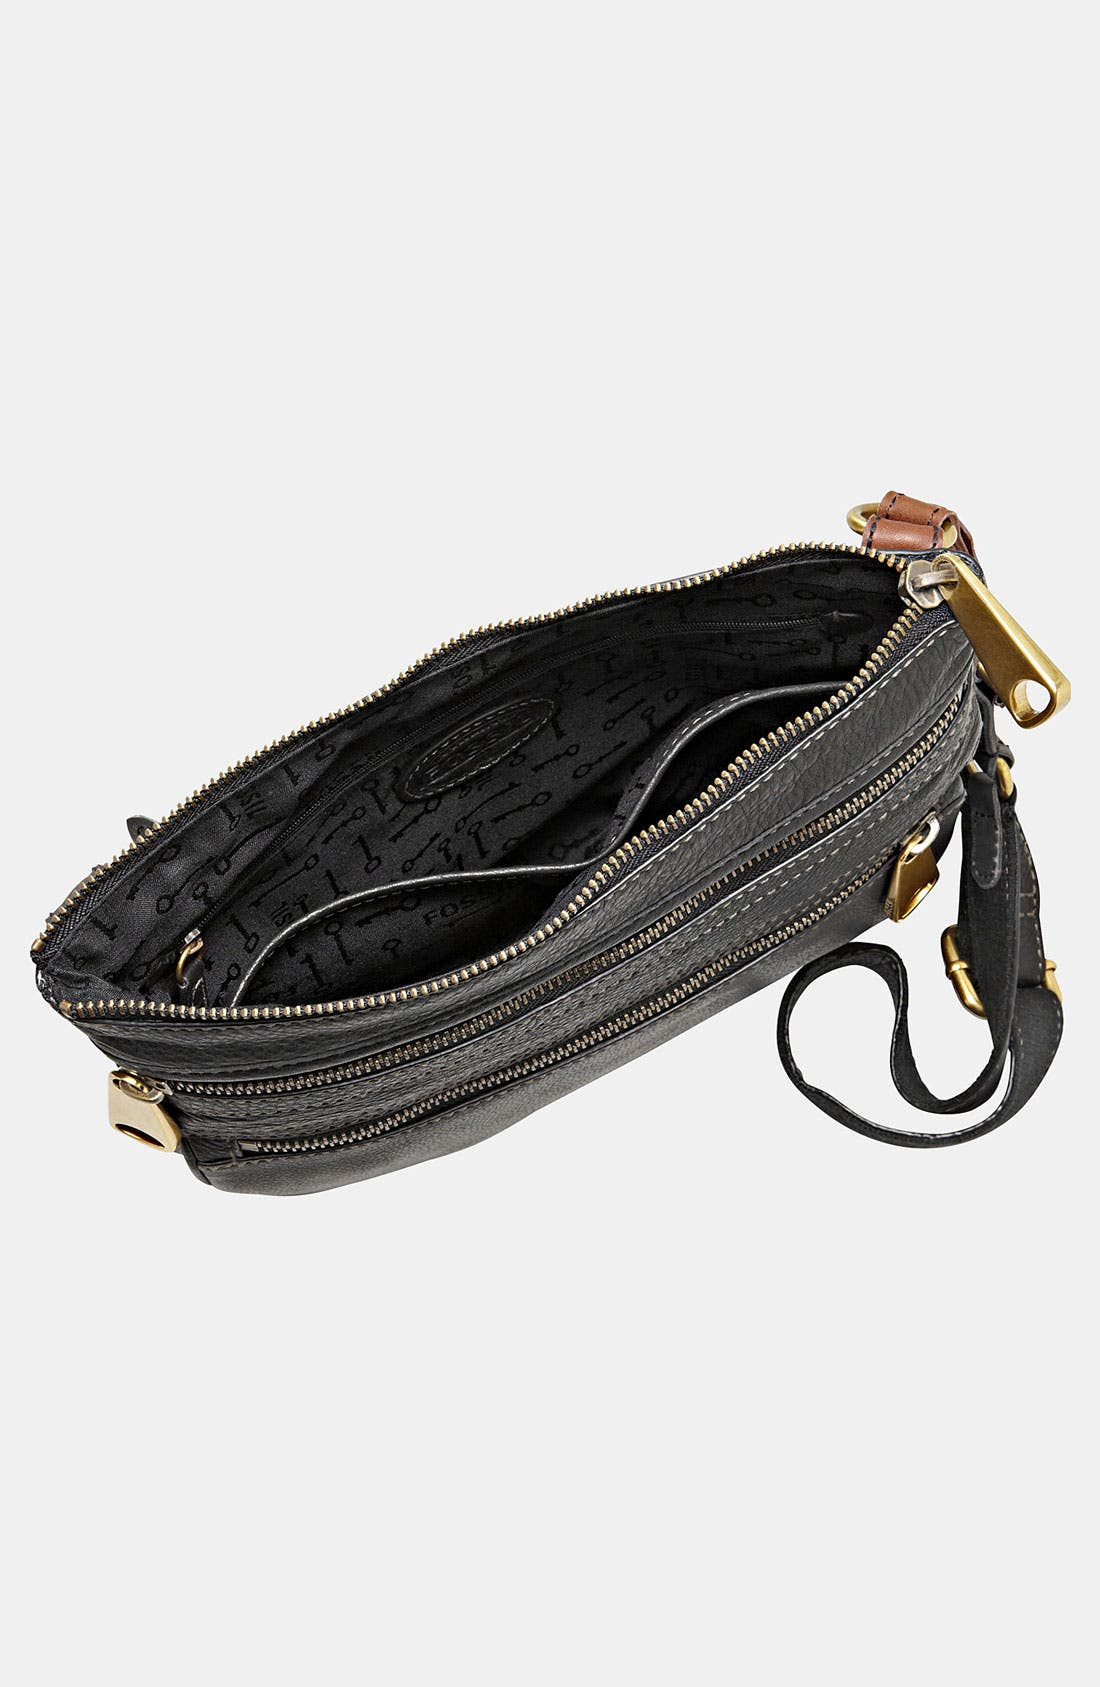 'Explorer' Crossbody Bag,                             Alternate thumbnail 4, color,                             001